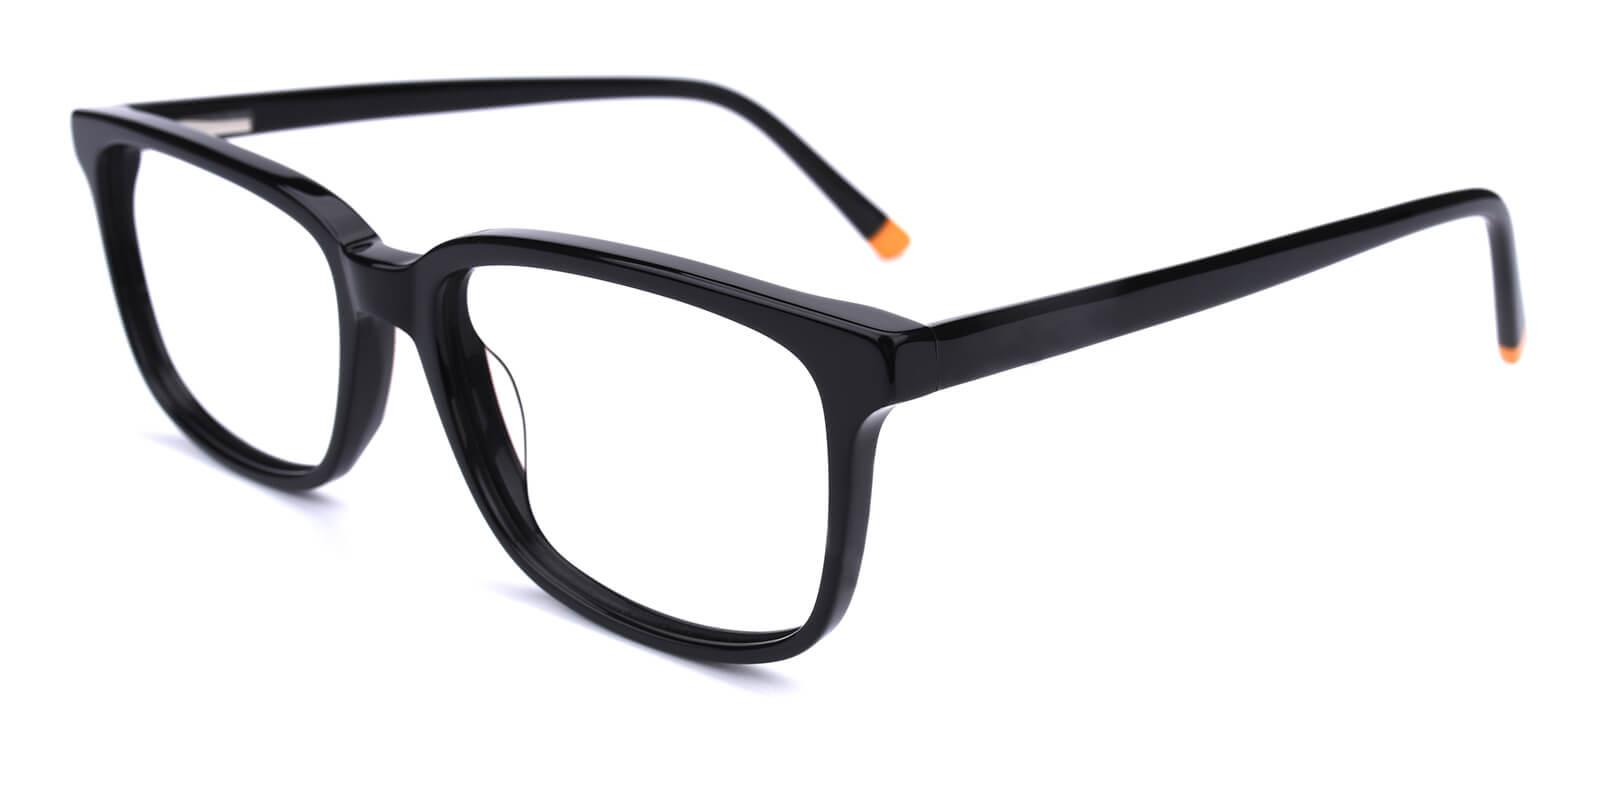 Connotation-Black-Rectangle-Acetate-Eyeglasses-additional1